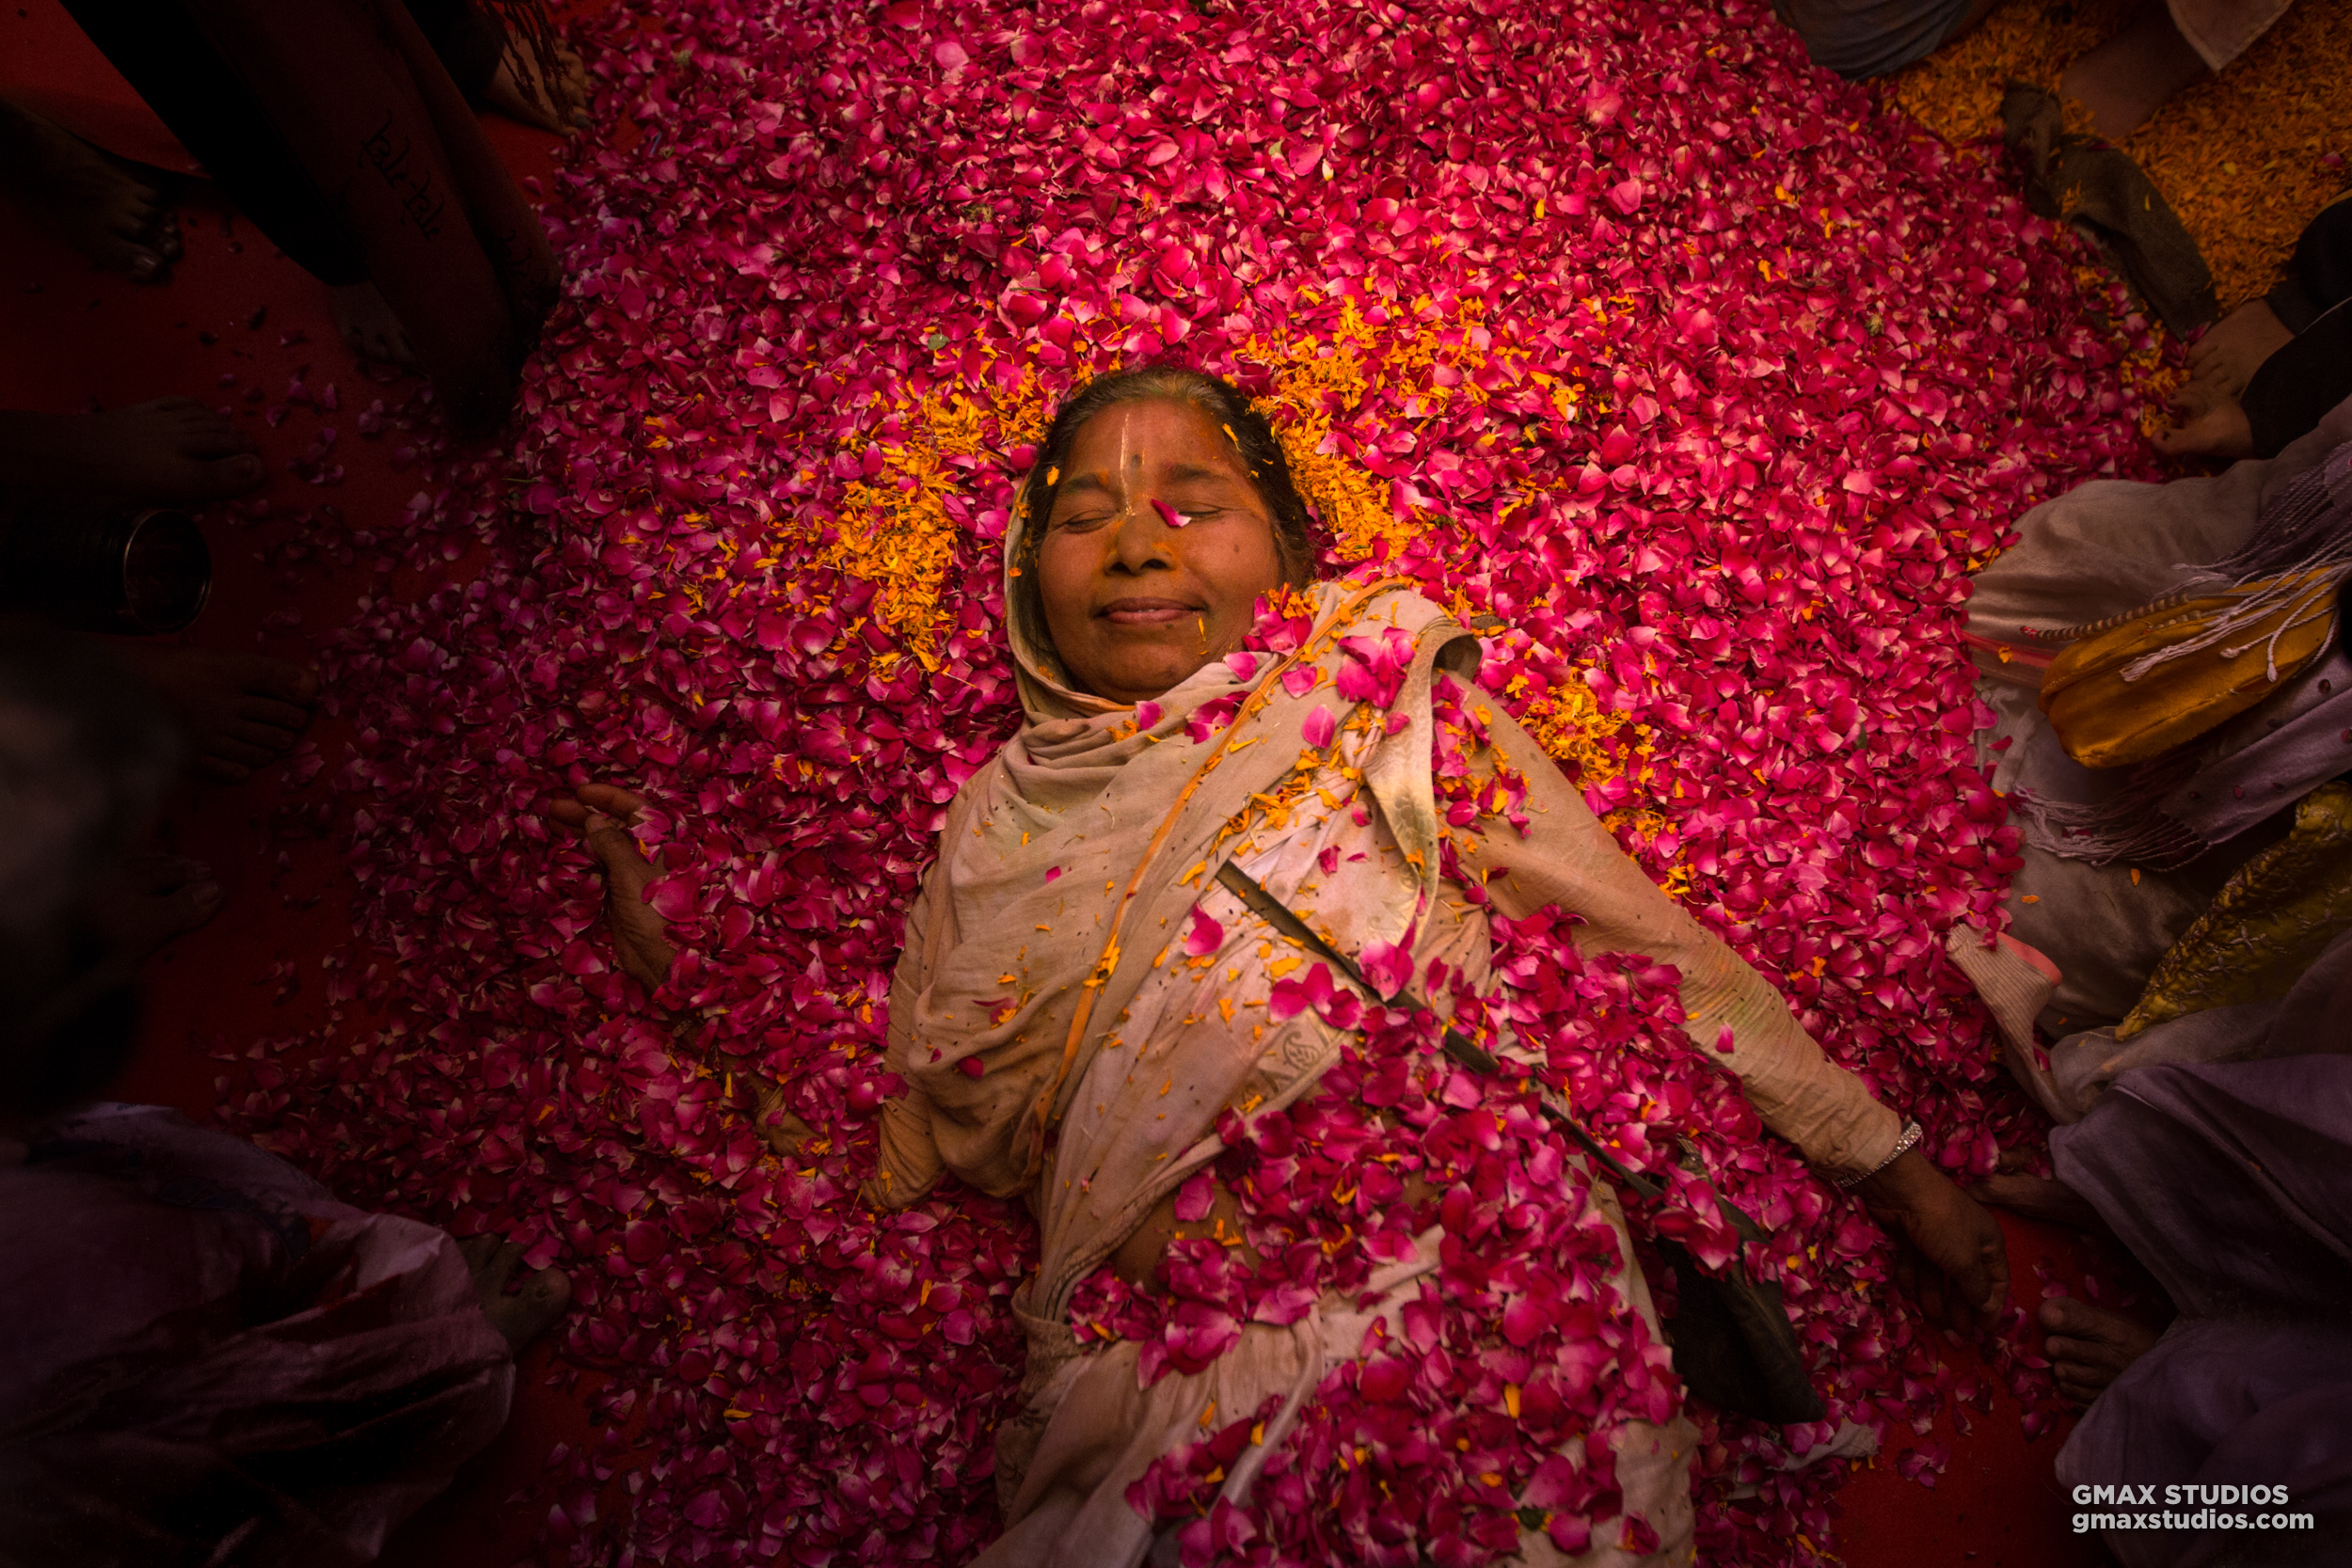 The widows don't partake in the consumption of bhang or any other intoxicants. But clearly, the lady in the picture was having the time of her life.